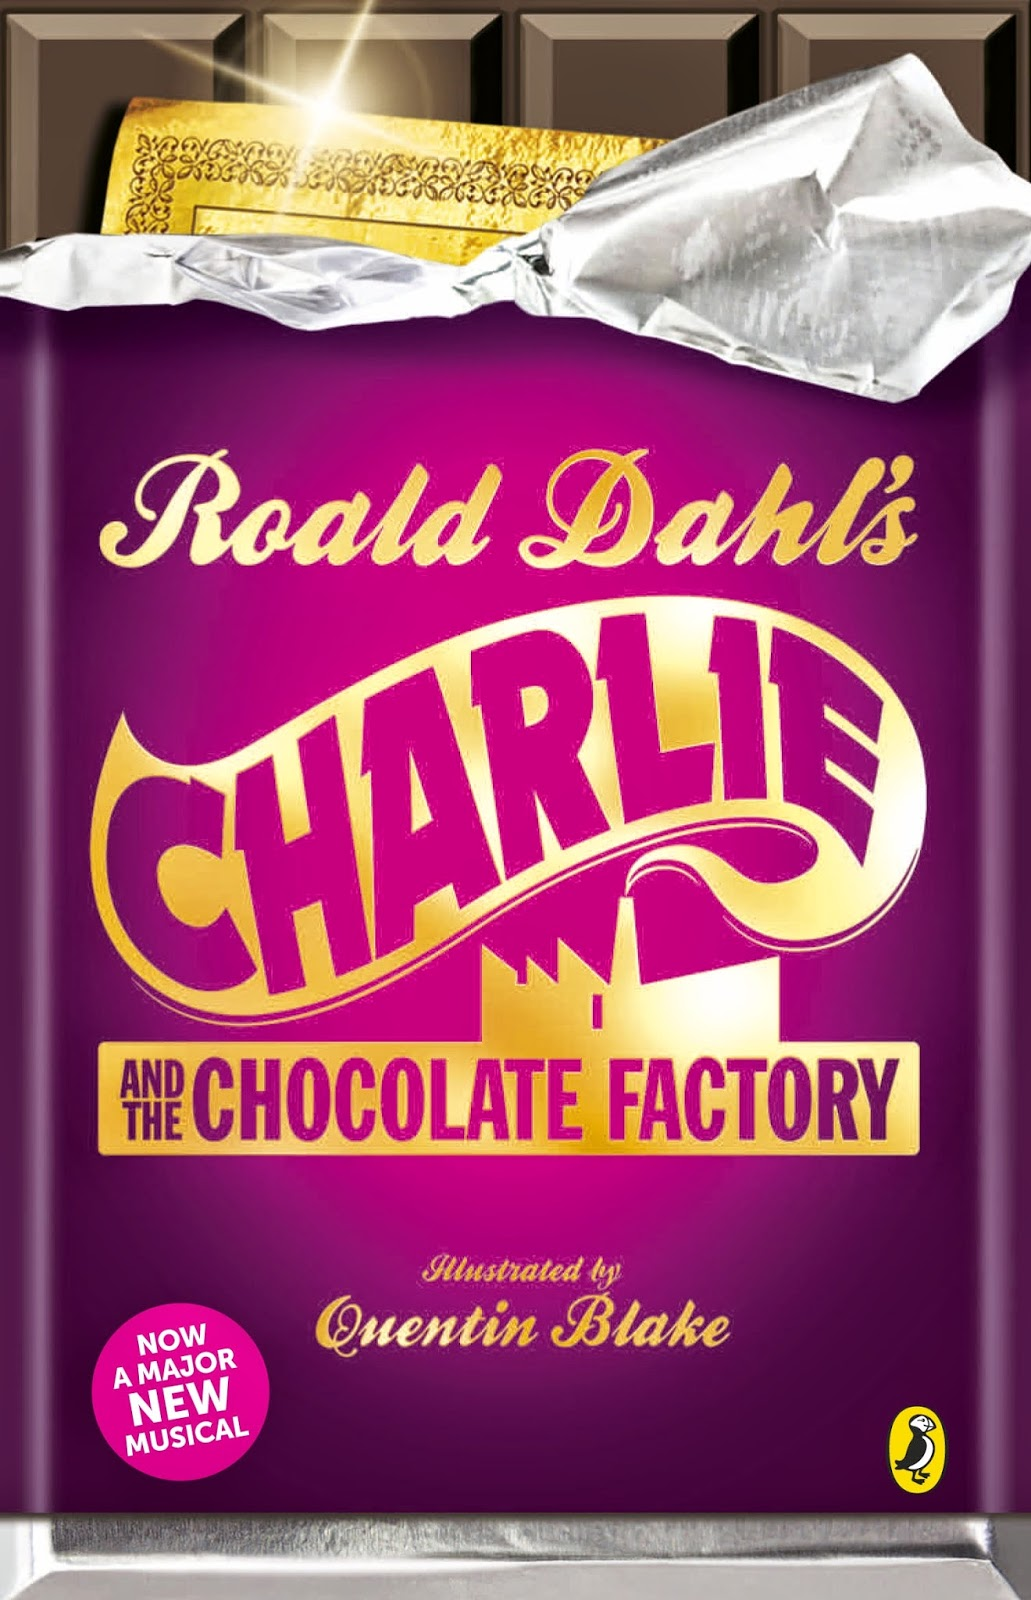 Roald Dahl Quotes Wallpaper Charlie And The Chocolate Factory By Roald Dahl Diva